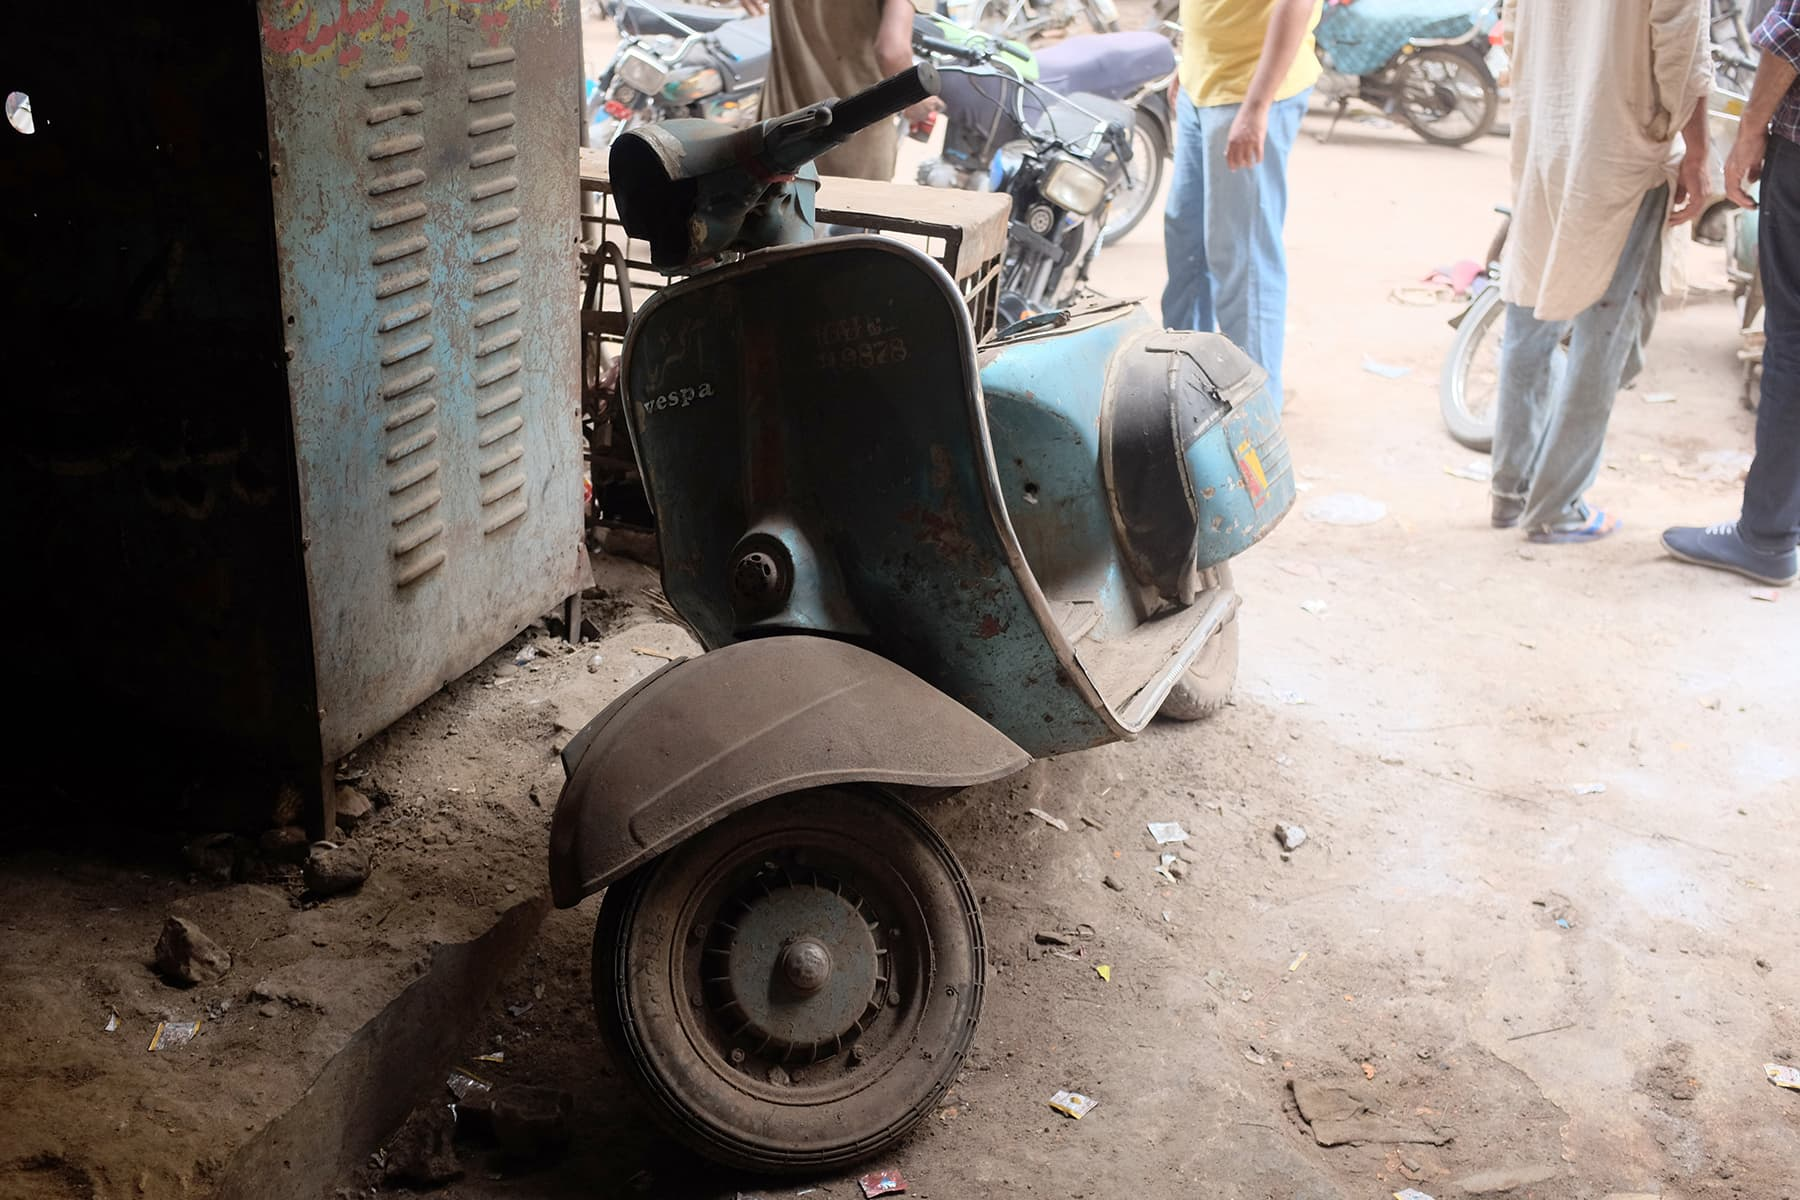 A Vespa waiting in line for refurbishment.